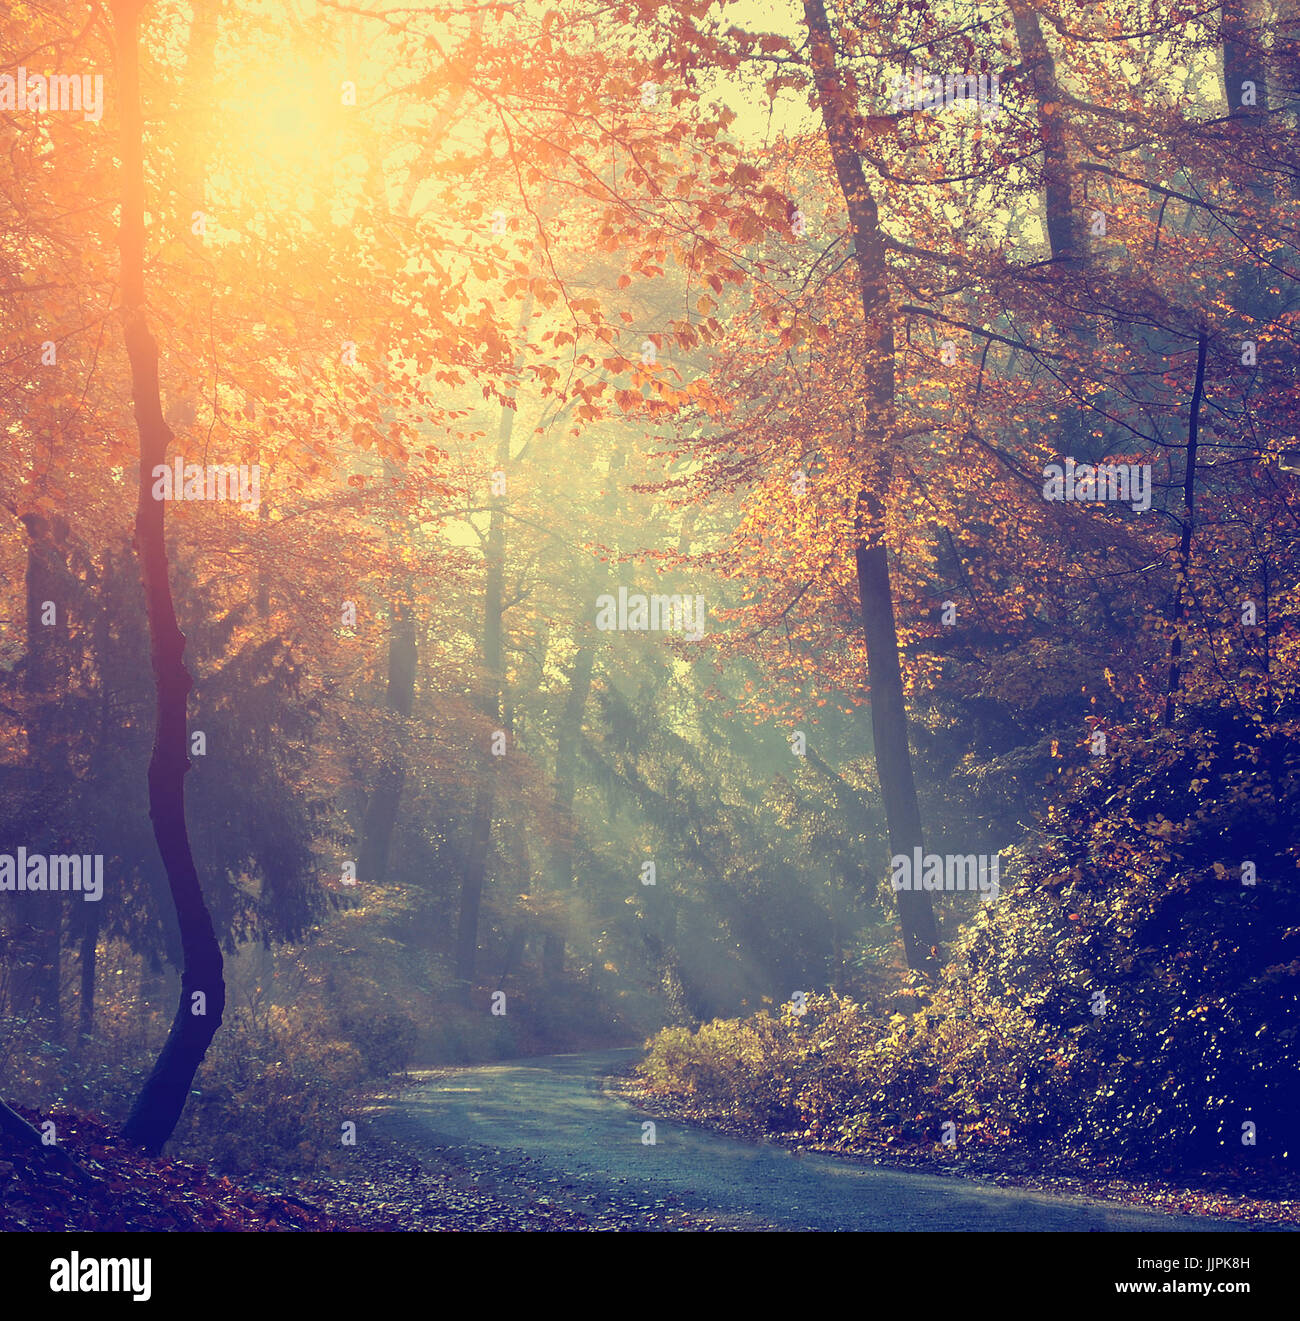 Autumn forest and road in sunrise - Stock Image